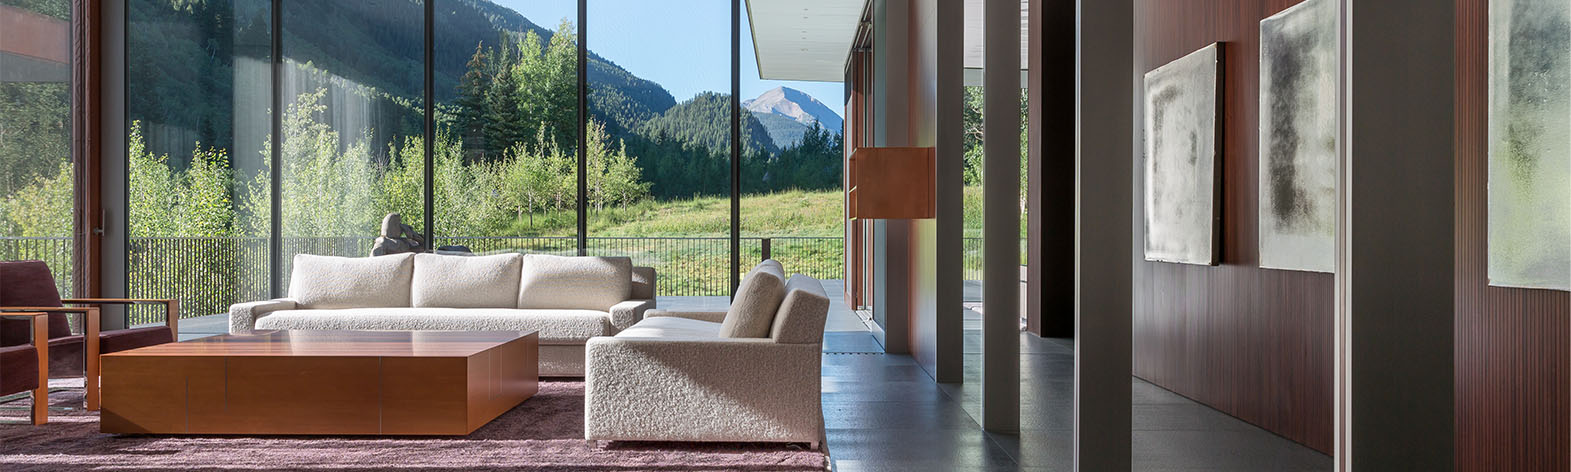 View through window walls of the mountains in a luxury home in Aspen, CO